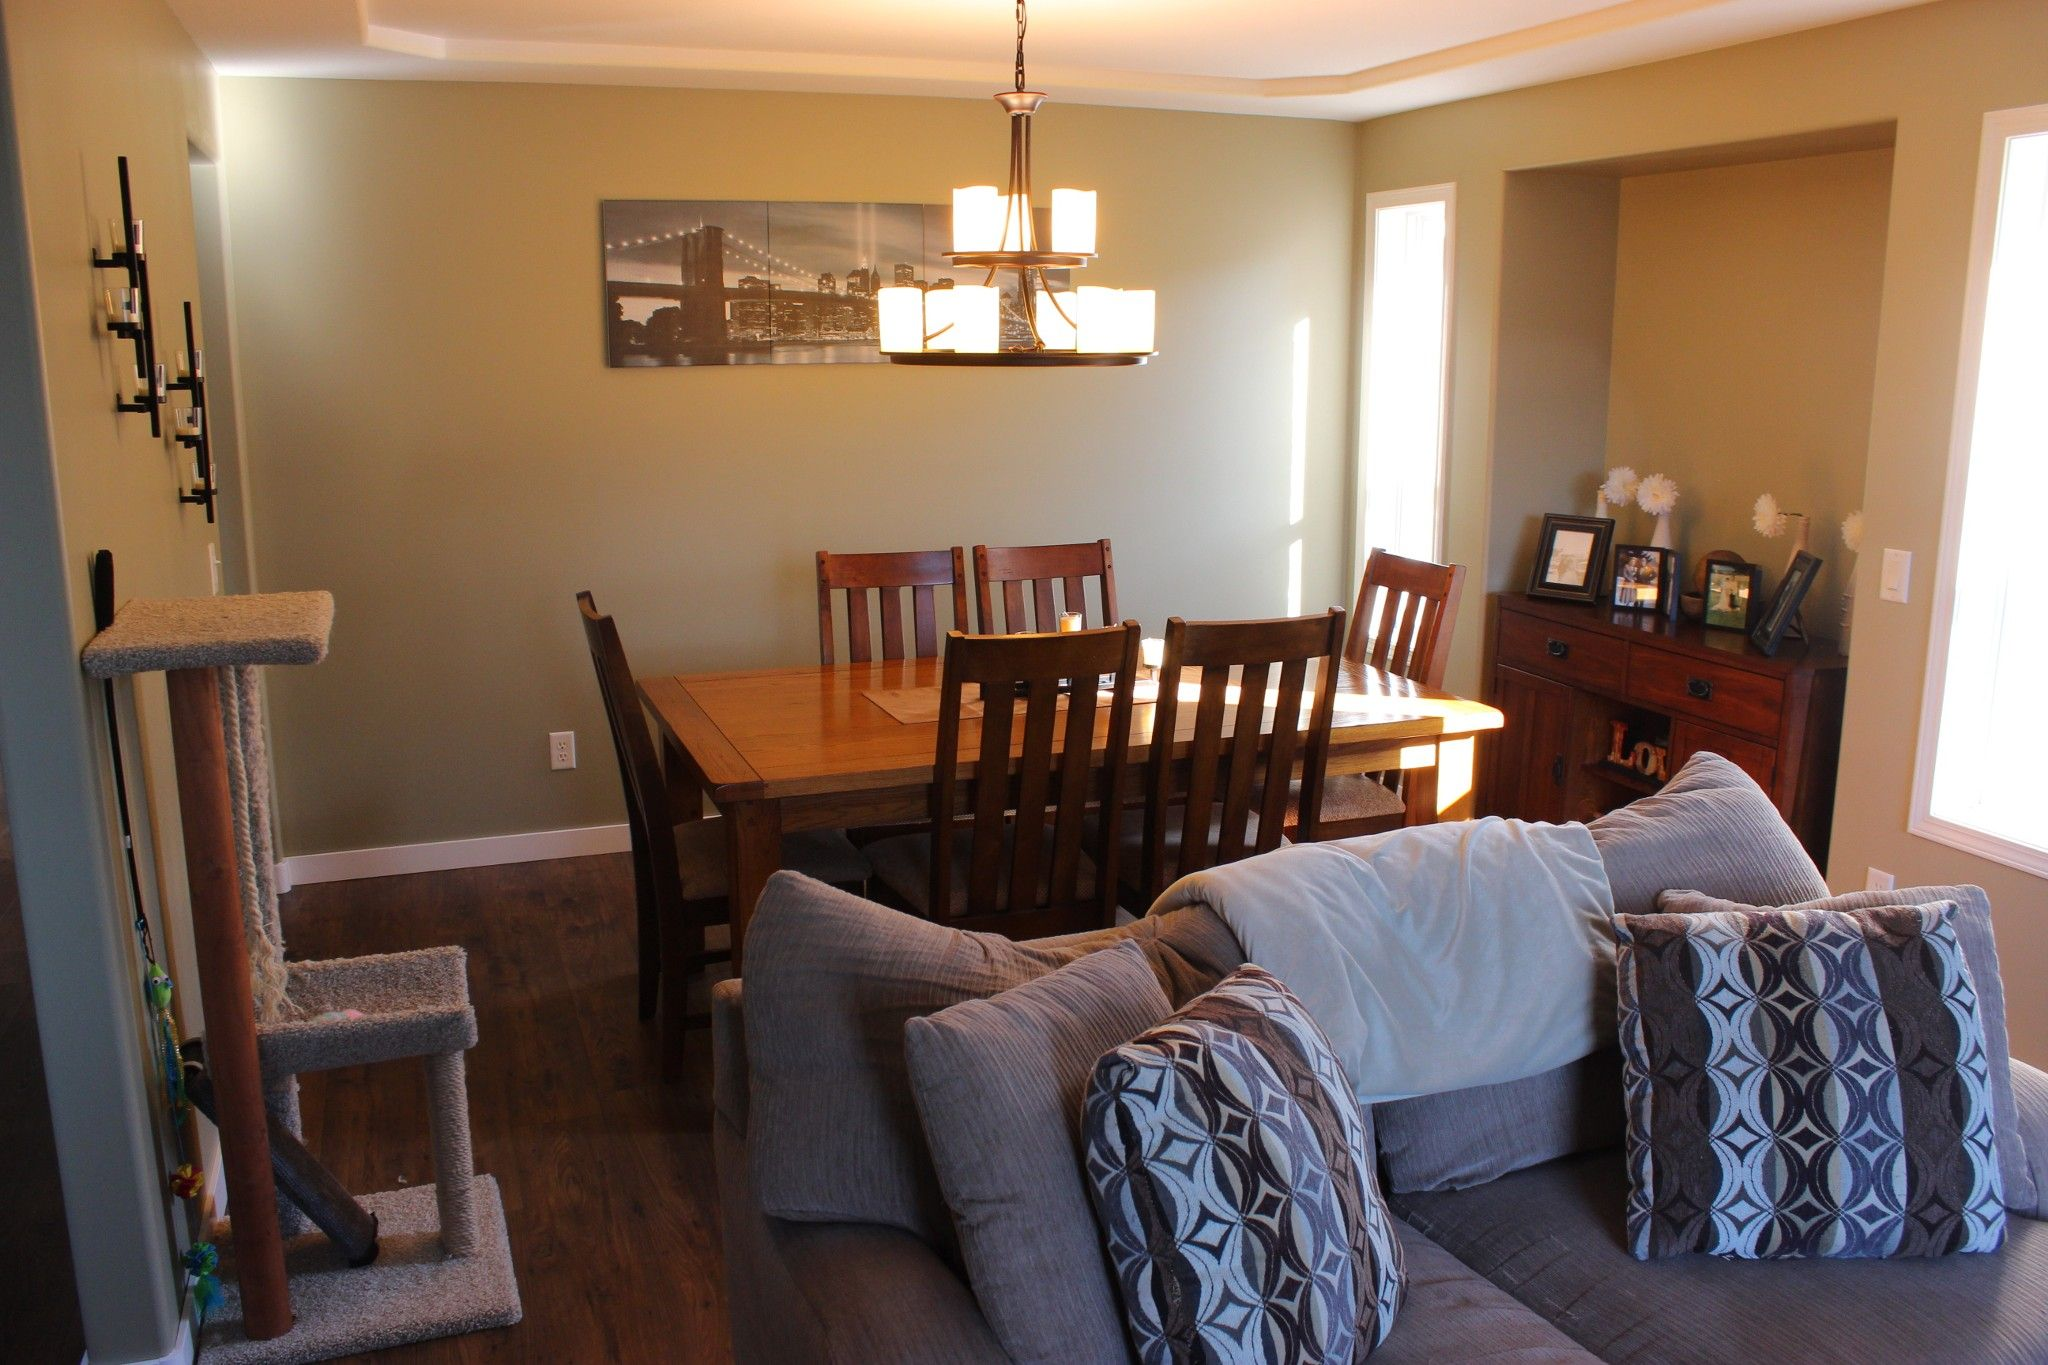 Photo 3: Photos: 3696 Navatanee Drive in Kamloops: South Thompson Valley House for sale : MLS®# 148660